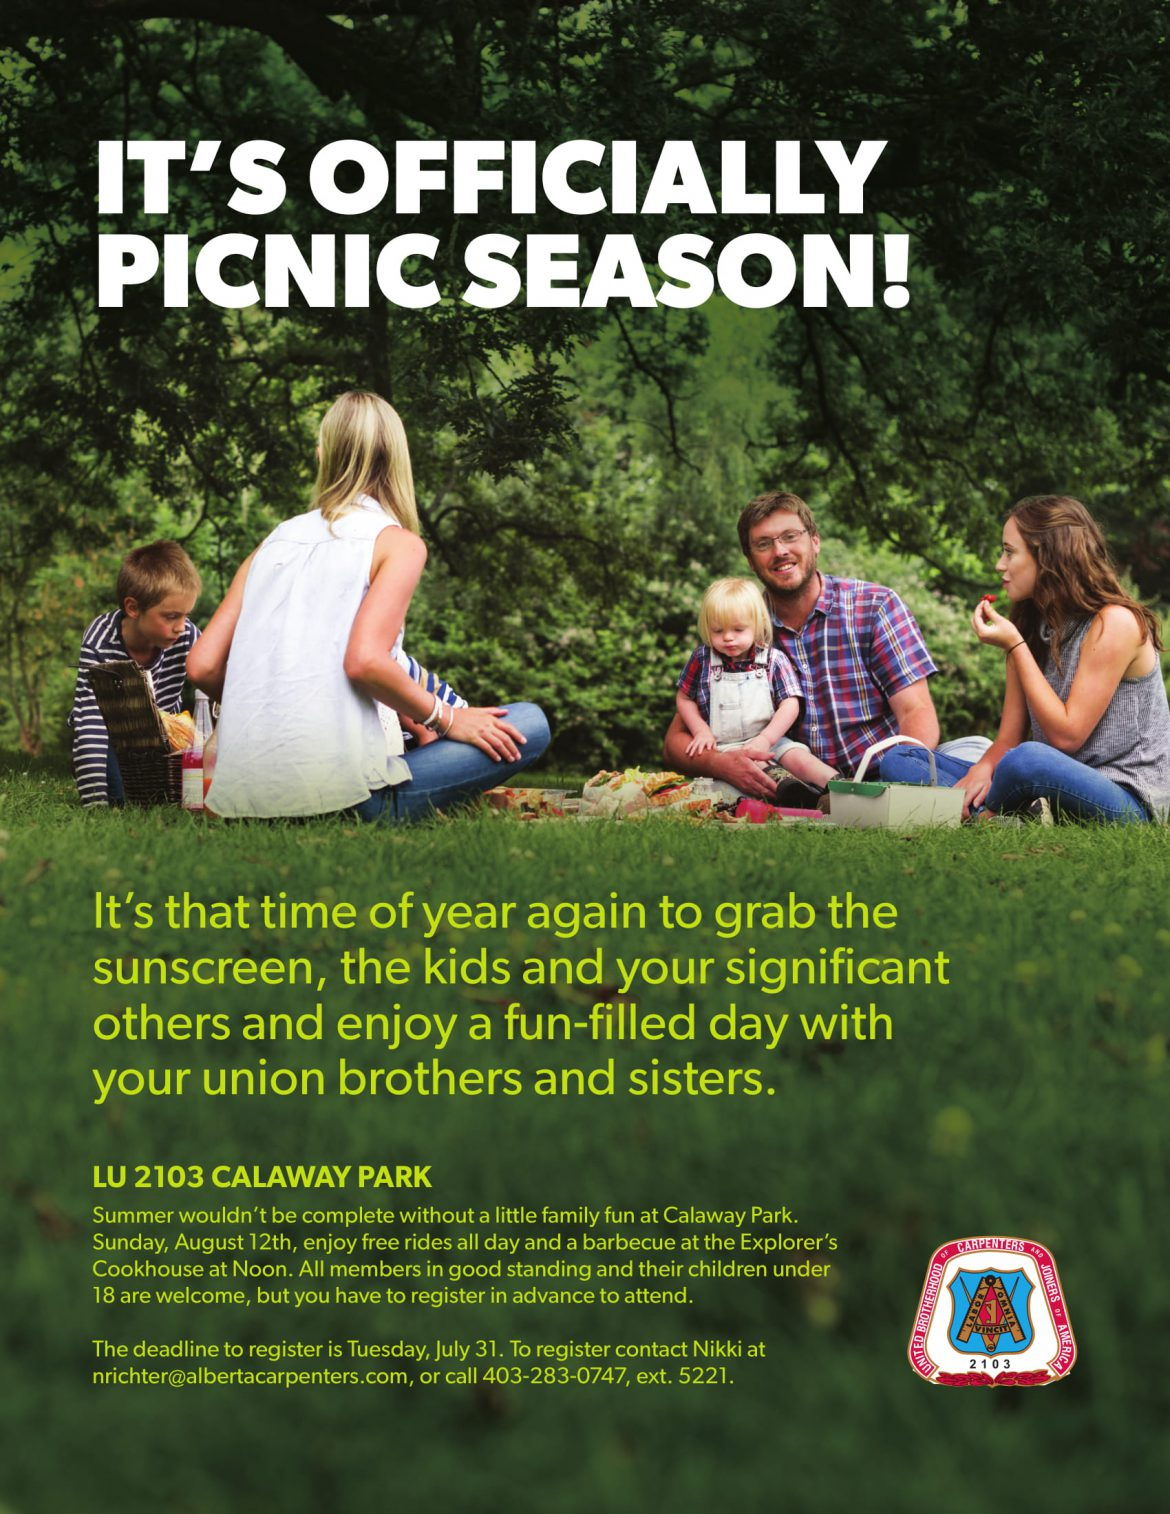 Local 2103 and 1325 Family Picnics scheduled for August 12